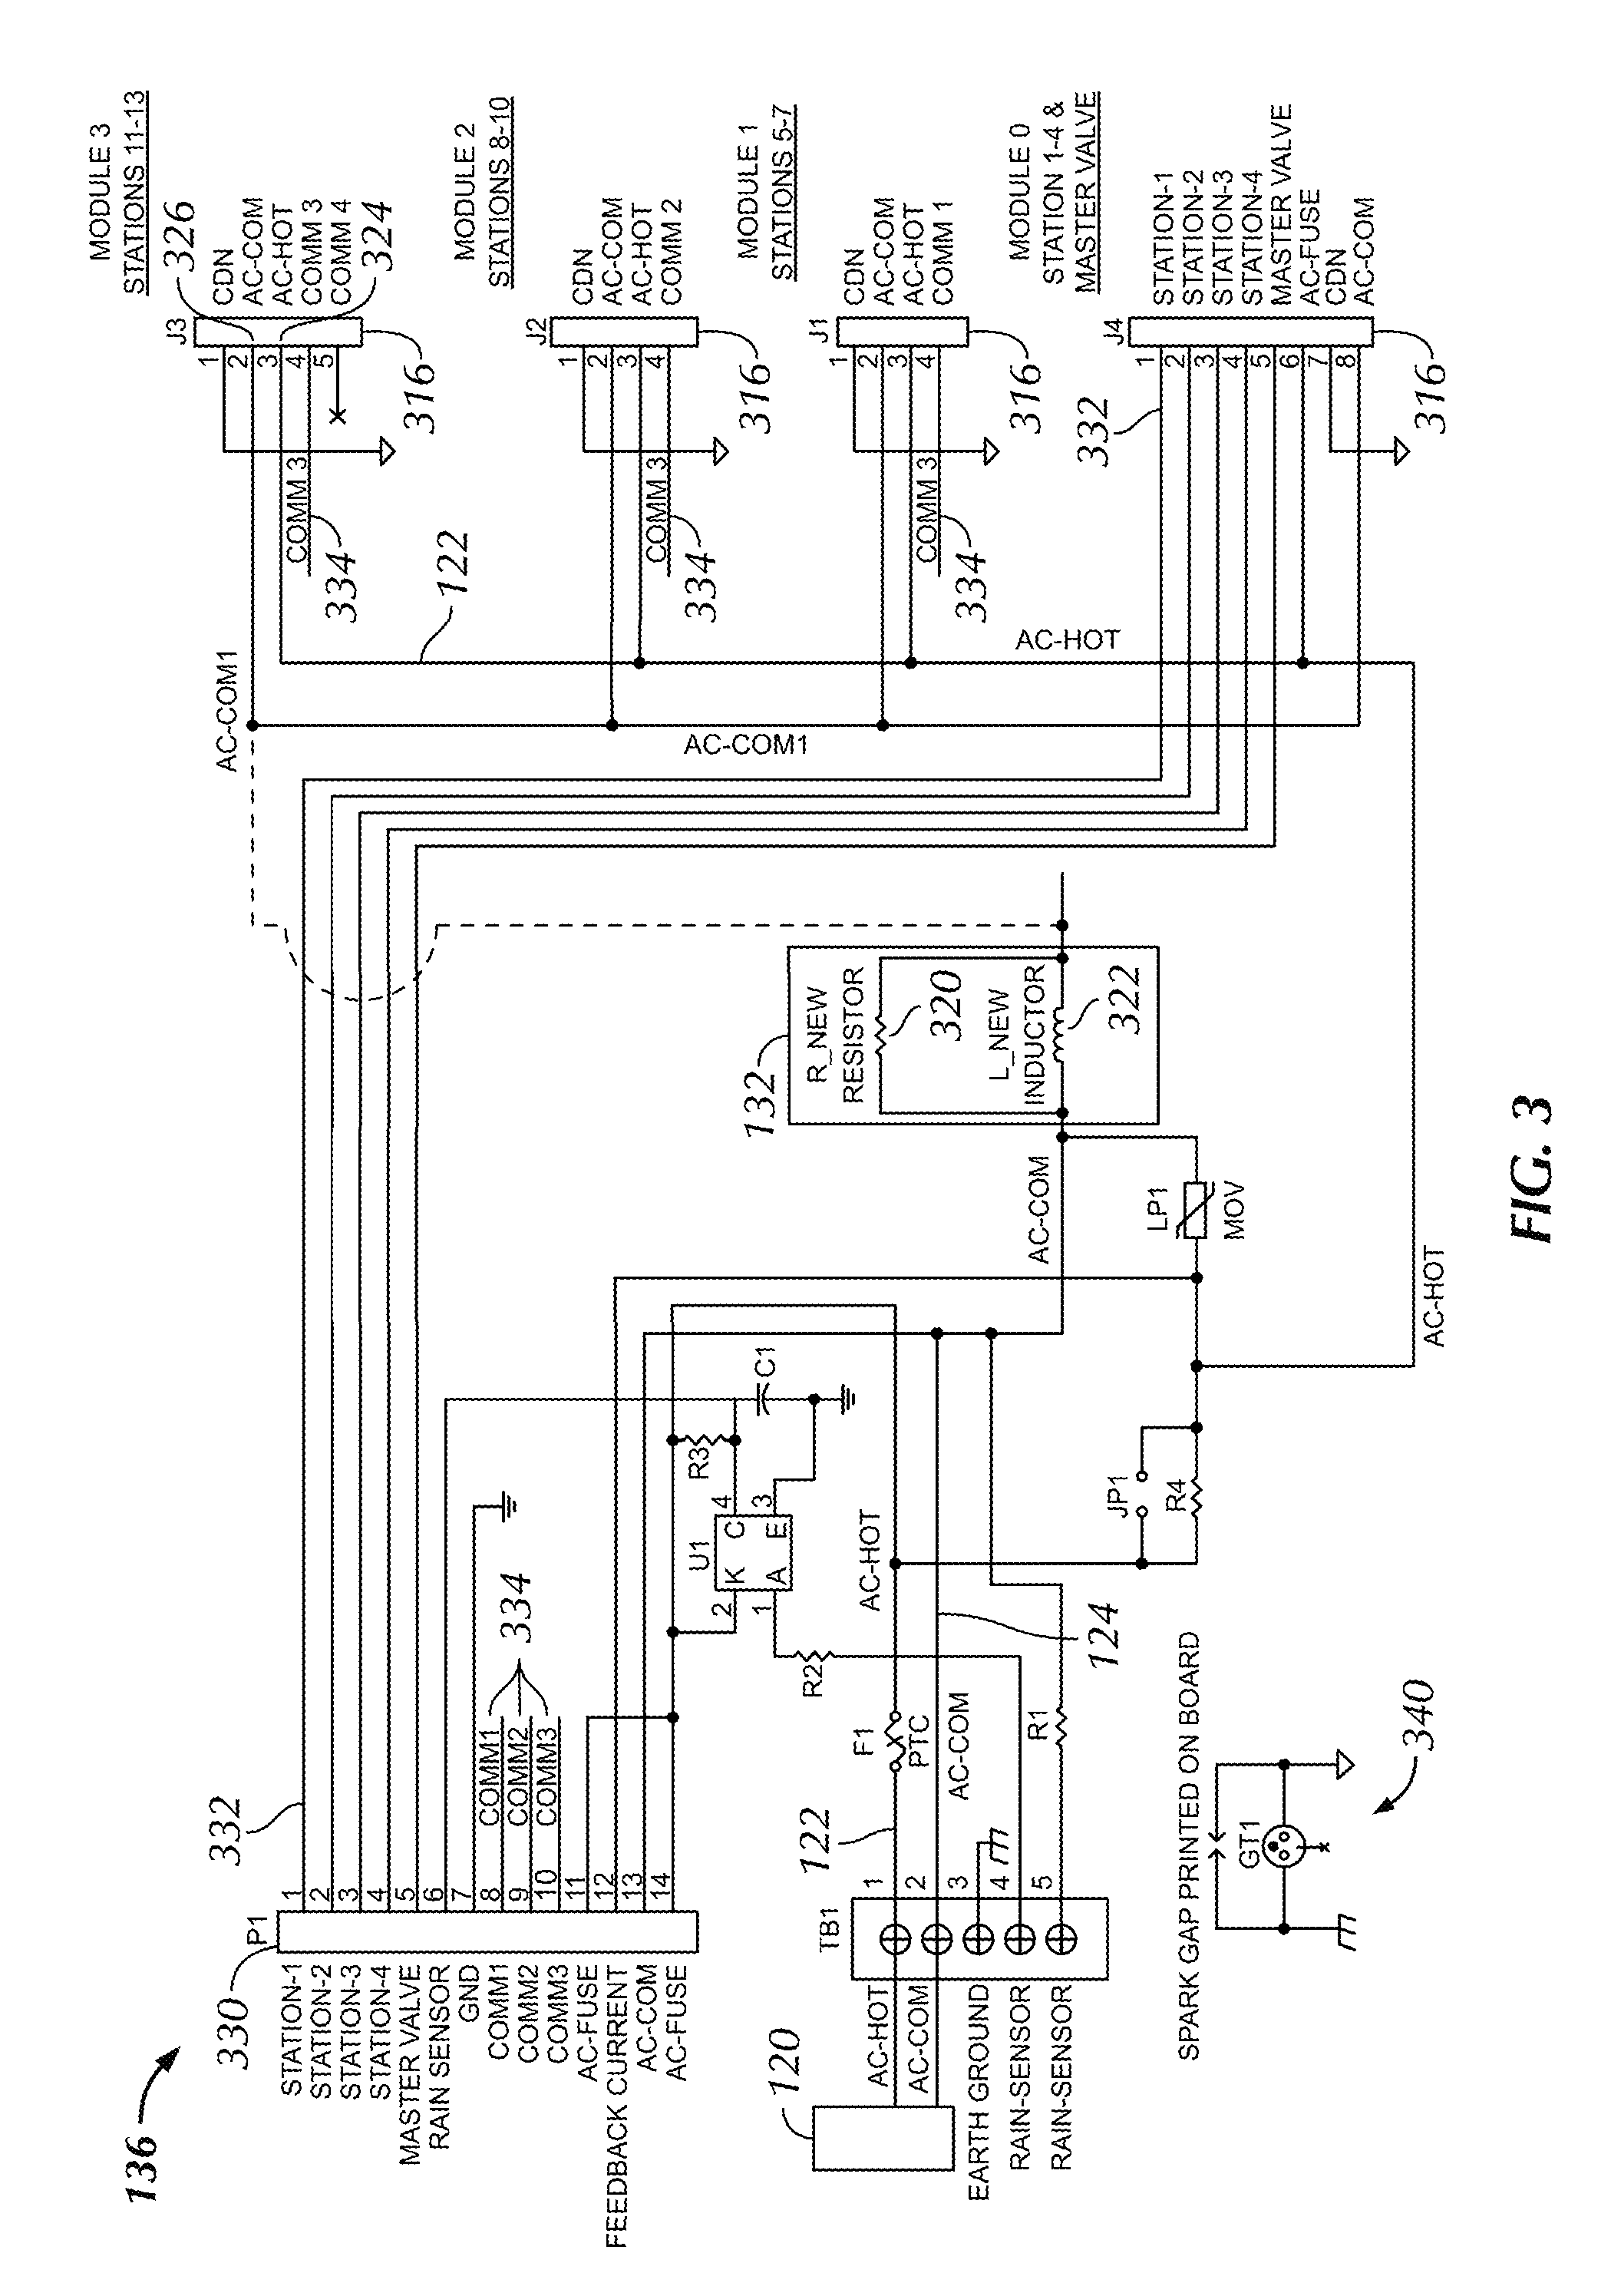 patent us20140277782 irrigation controllers enhanced patent drawing